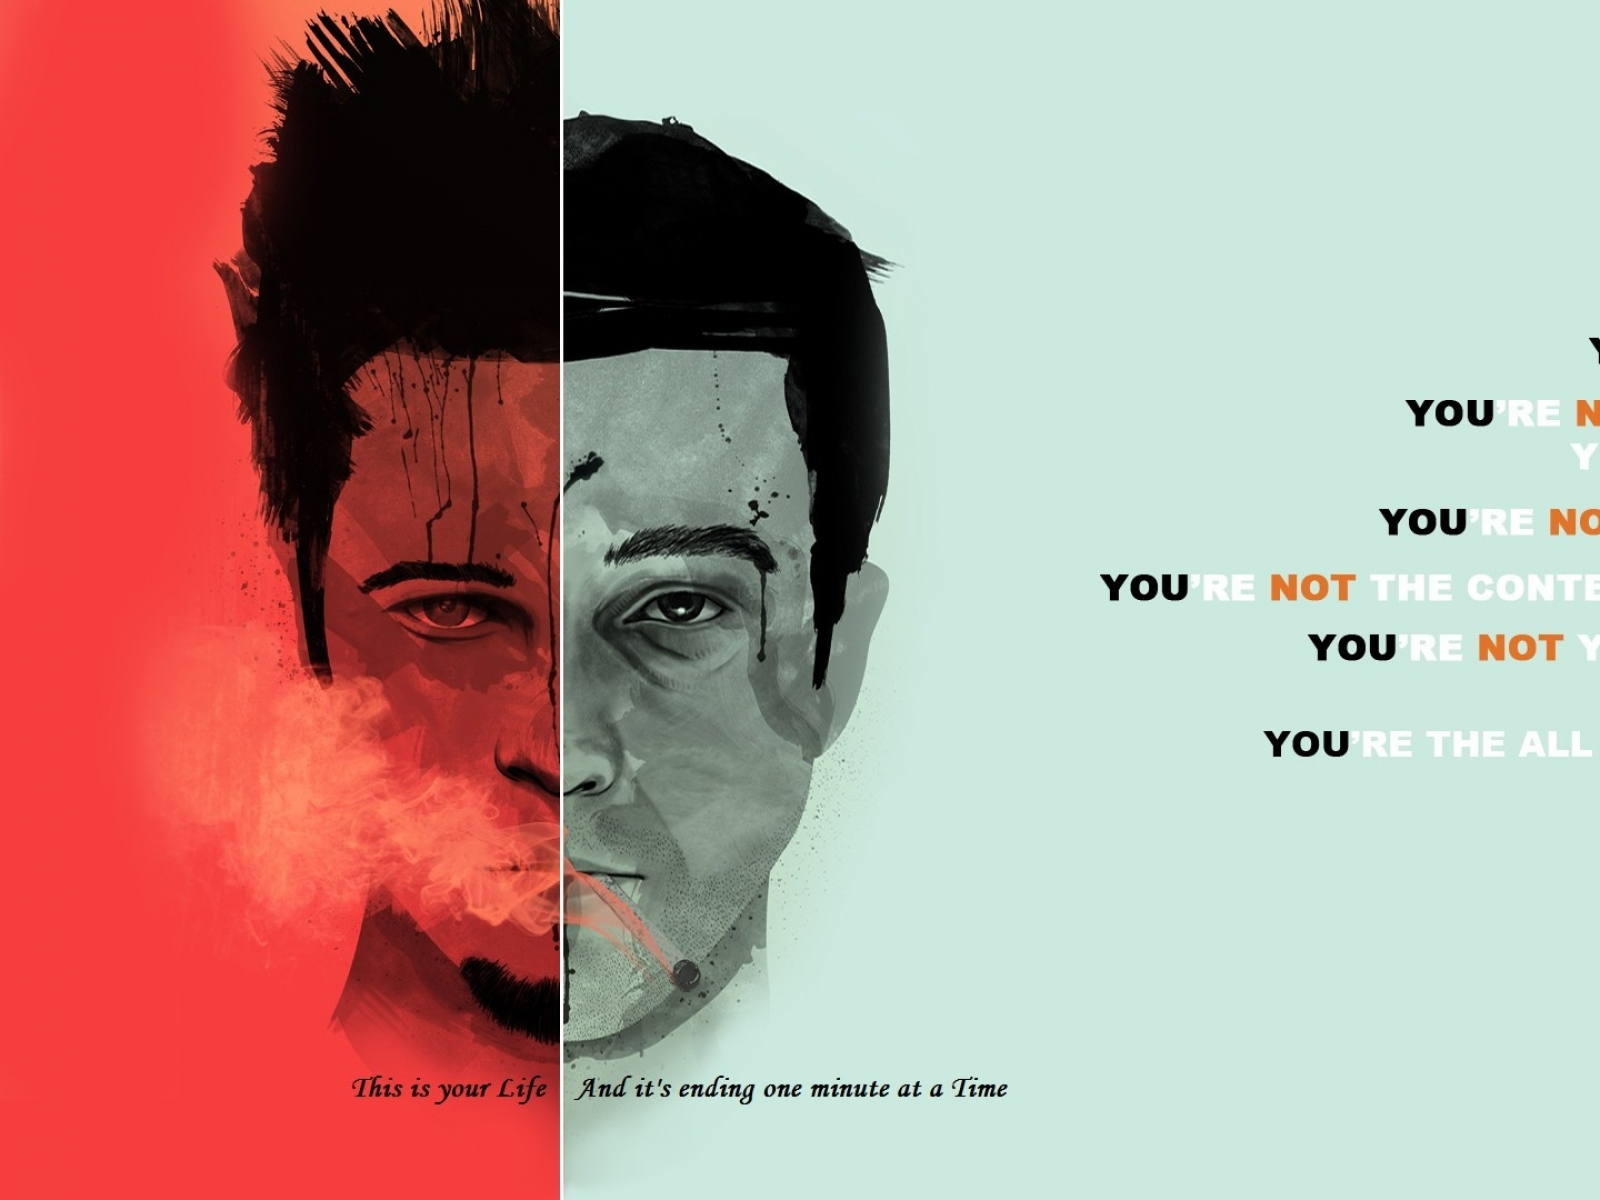 text-quotes-fight-club-brad-pitt-edward-norton-tyler-durden-faces-1920x1080-wallpaper-wp38010804